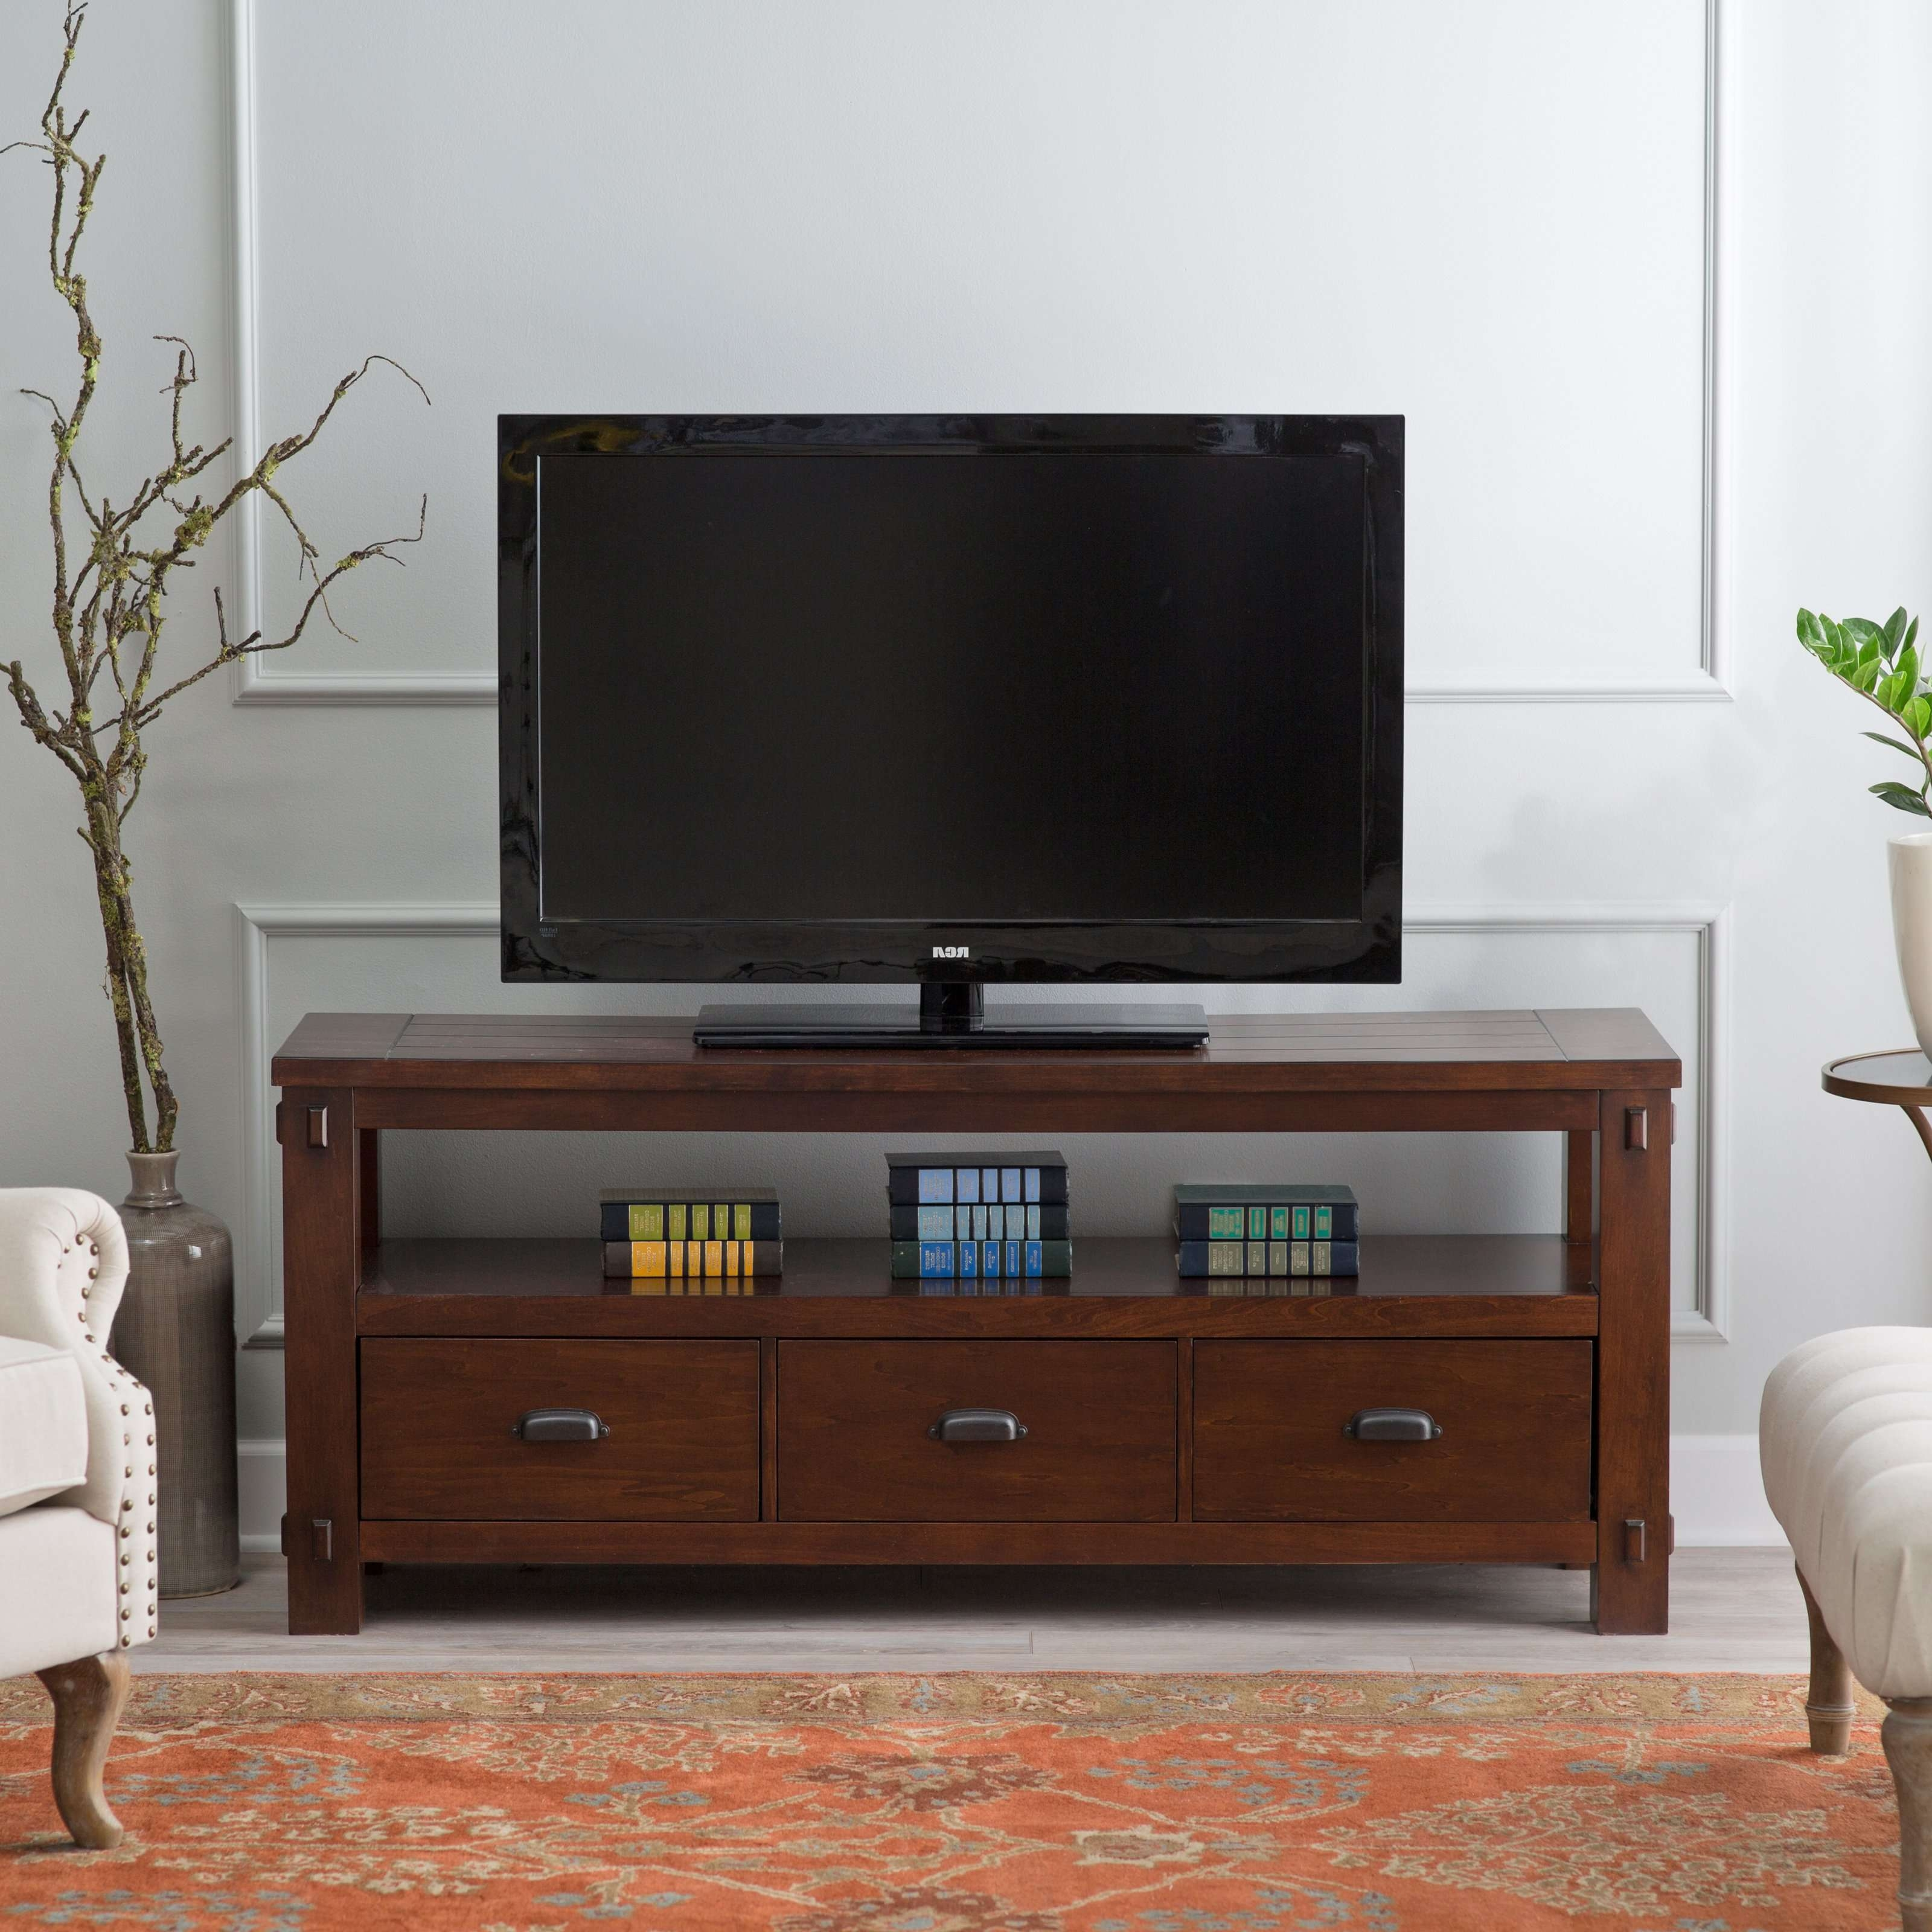 Corner Tv Stand For Inch Flat Screen Fascinating On Home Decors Within Corner Tv Stands For 60 Inch Flat Screens (View 4 of 15)